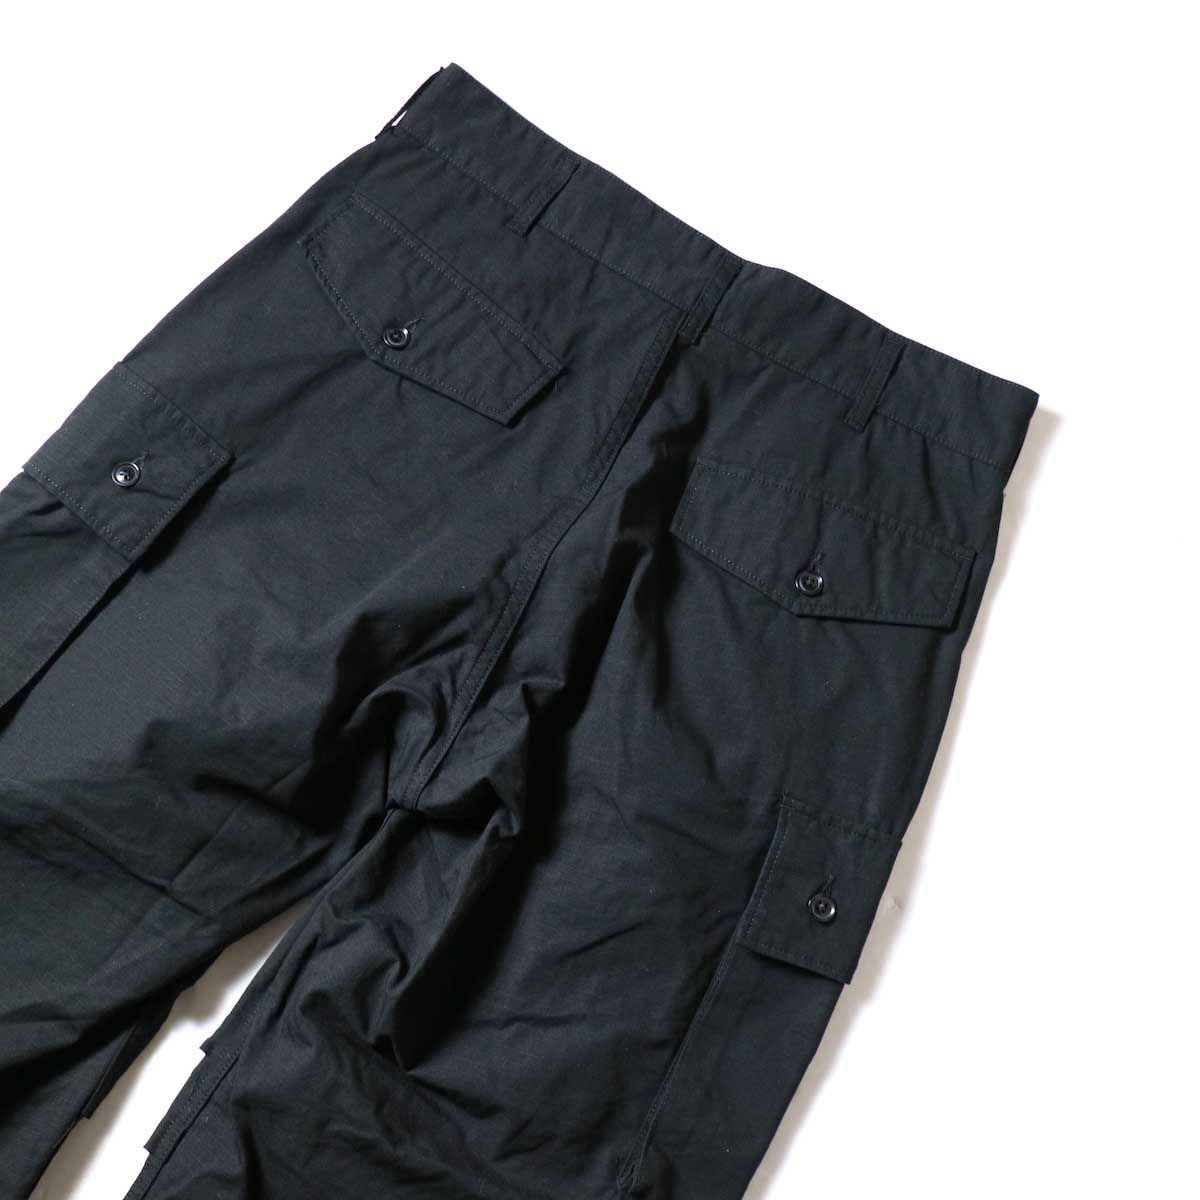 ENGINEERED GARMENTS / FA Pant - Cotton Ripstop (Black)ポケット